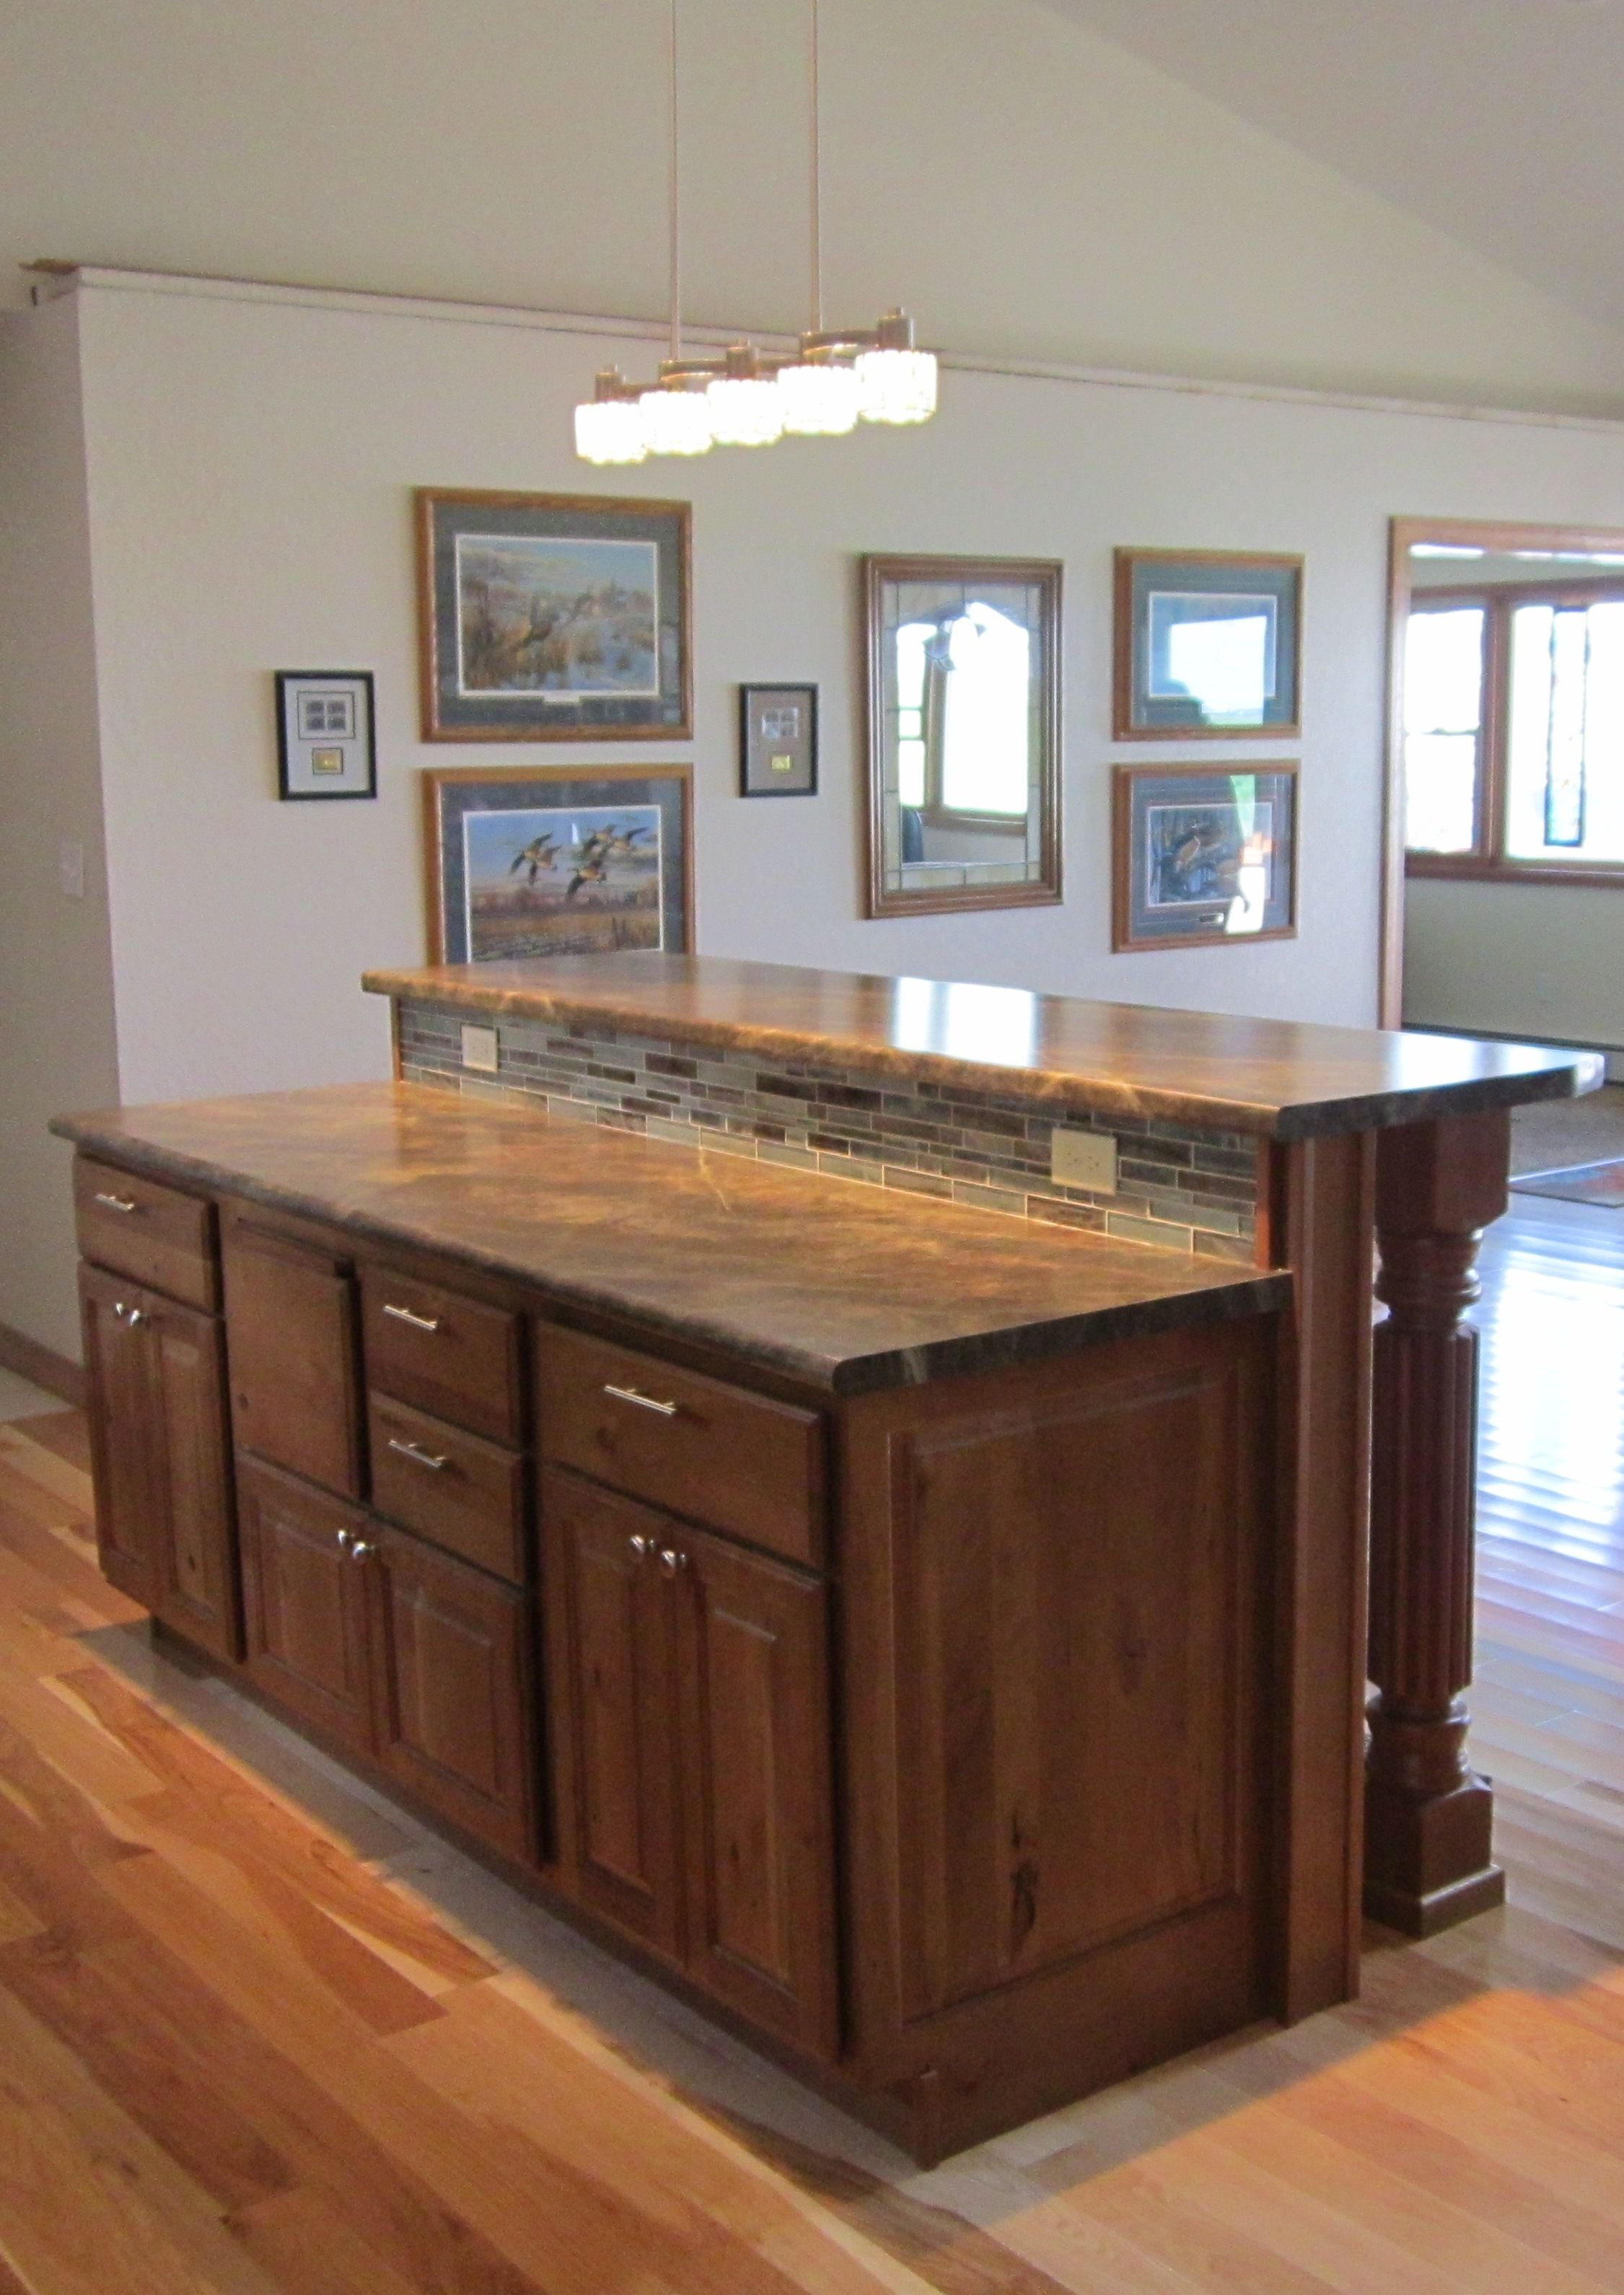 Pin By Highland Cabinets Inc On Karman Cabinets Rustic Cherry Cabinets New Kitchen Cabinets Kitchen Remodel